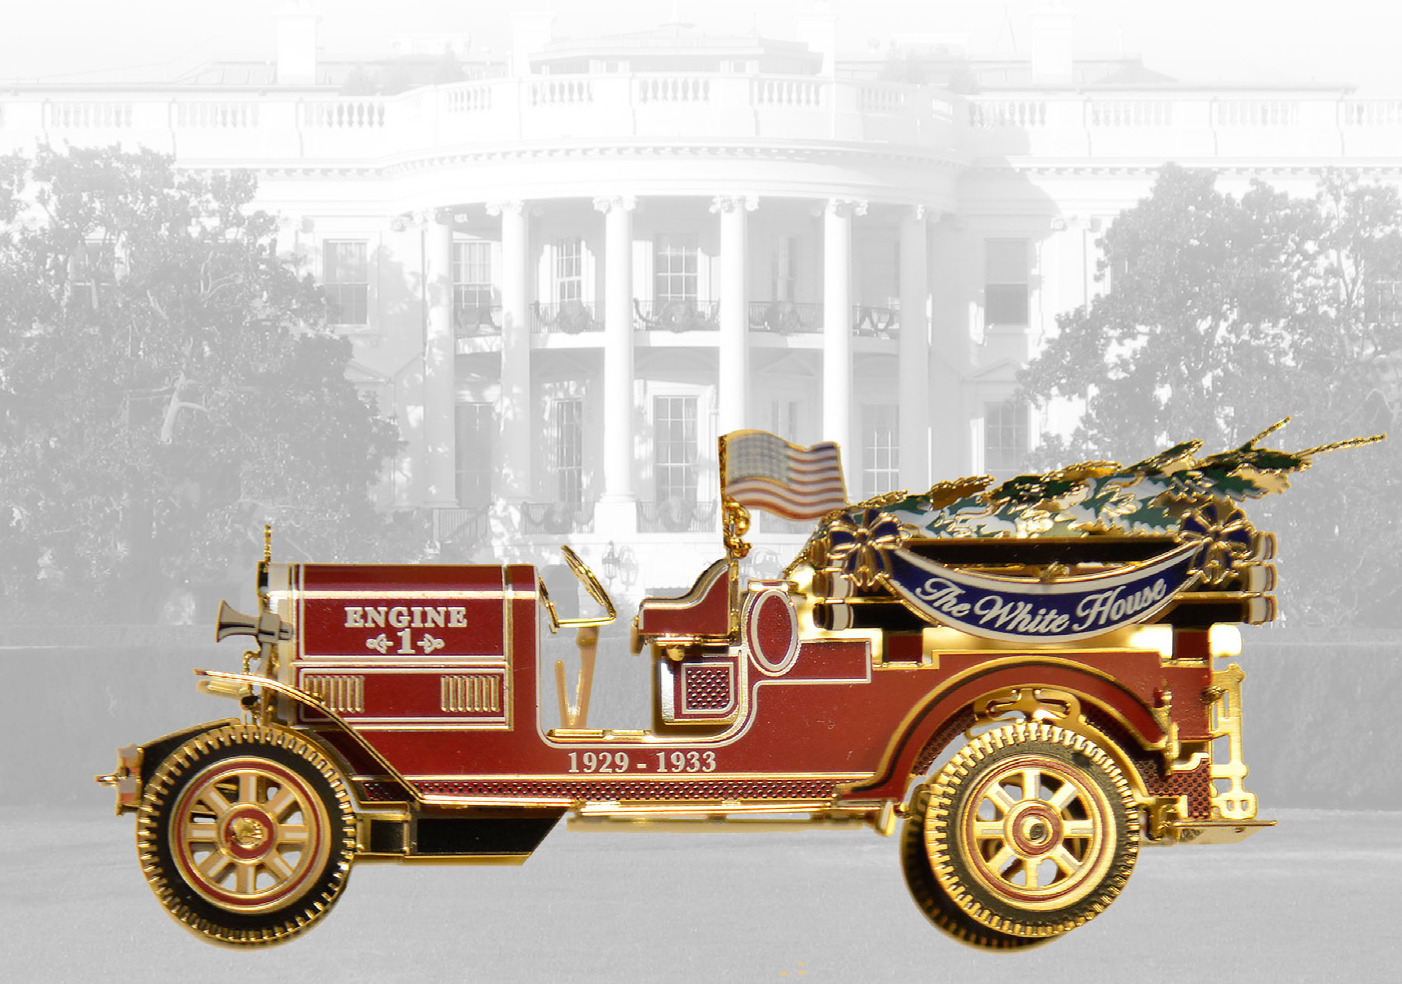 White house christmas ornaments historical society - The 2016 White House Christmas Ornament Honors The Administration Of Herbert Hoover Who Served As The Thirty First President From 1929 1933